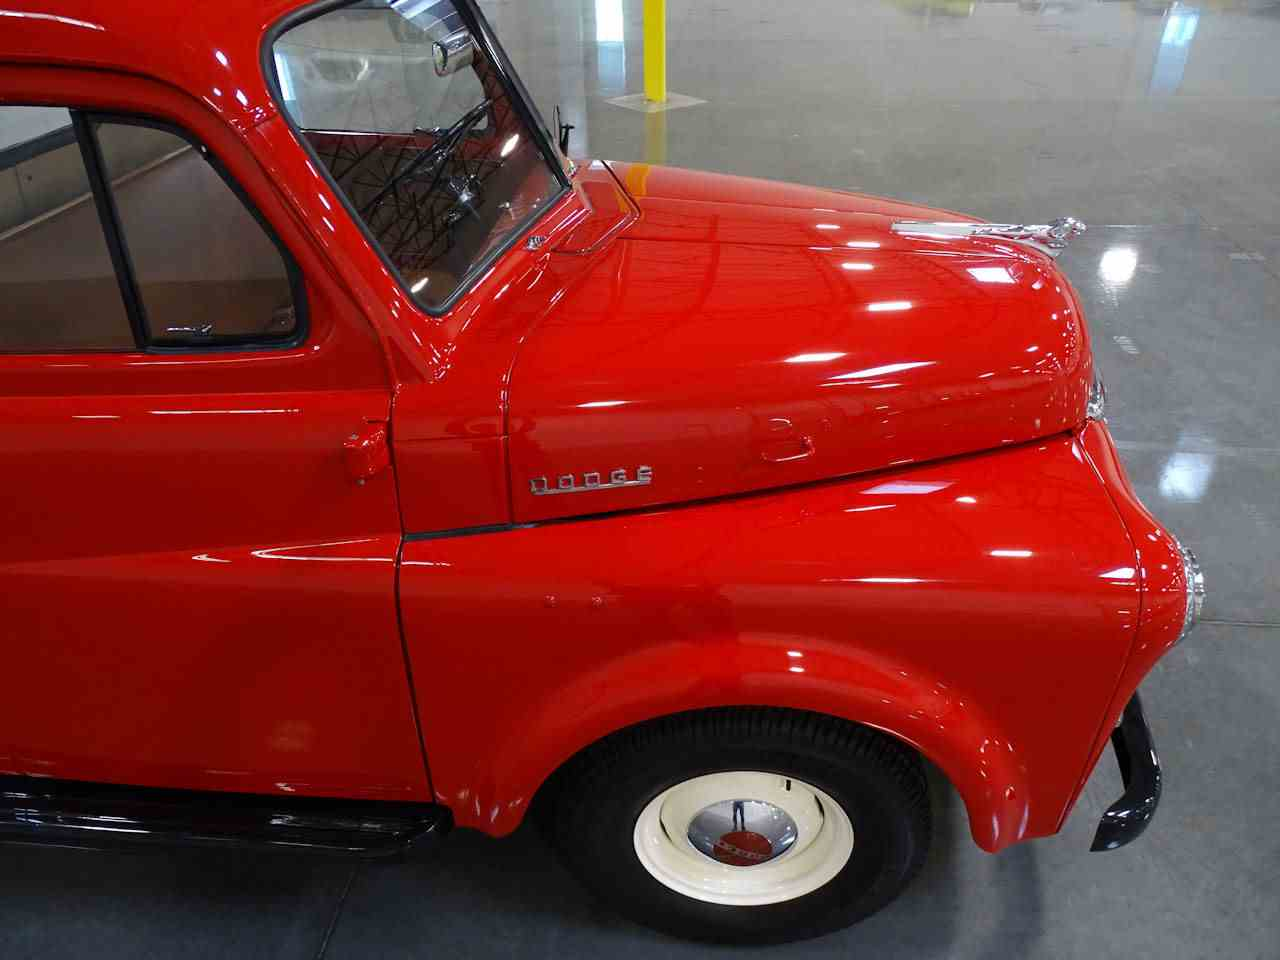 Large Picture of '49 Dodge B1 located in Deer Valley Arizona - $38,995.00 - MC7R